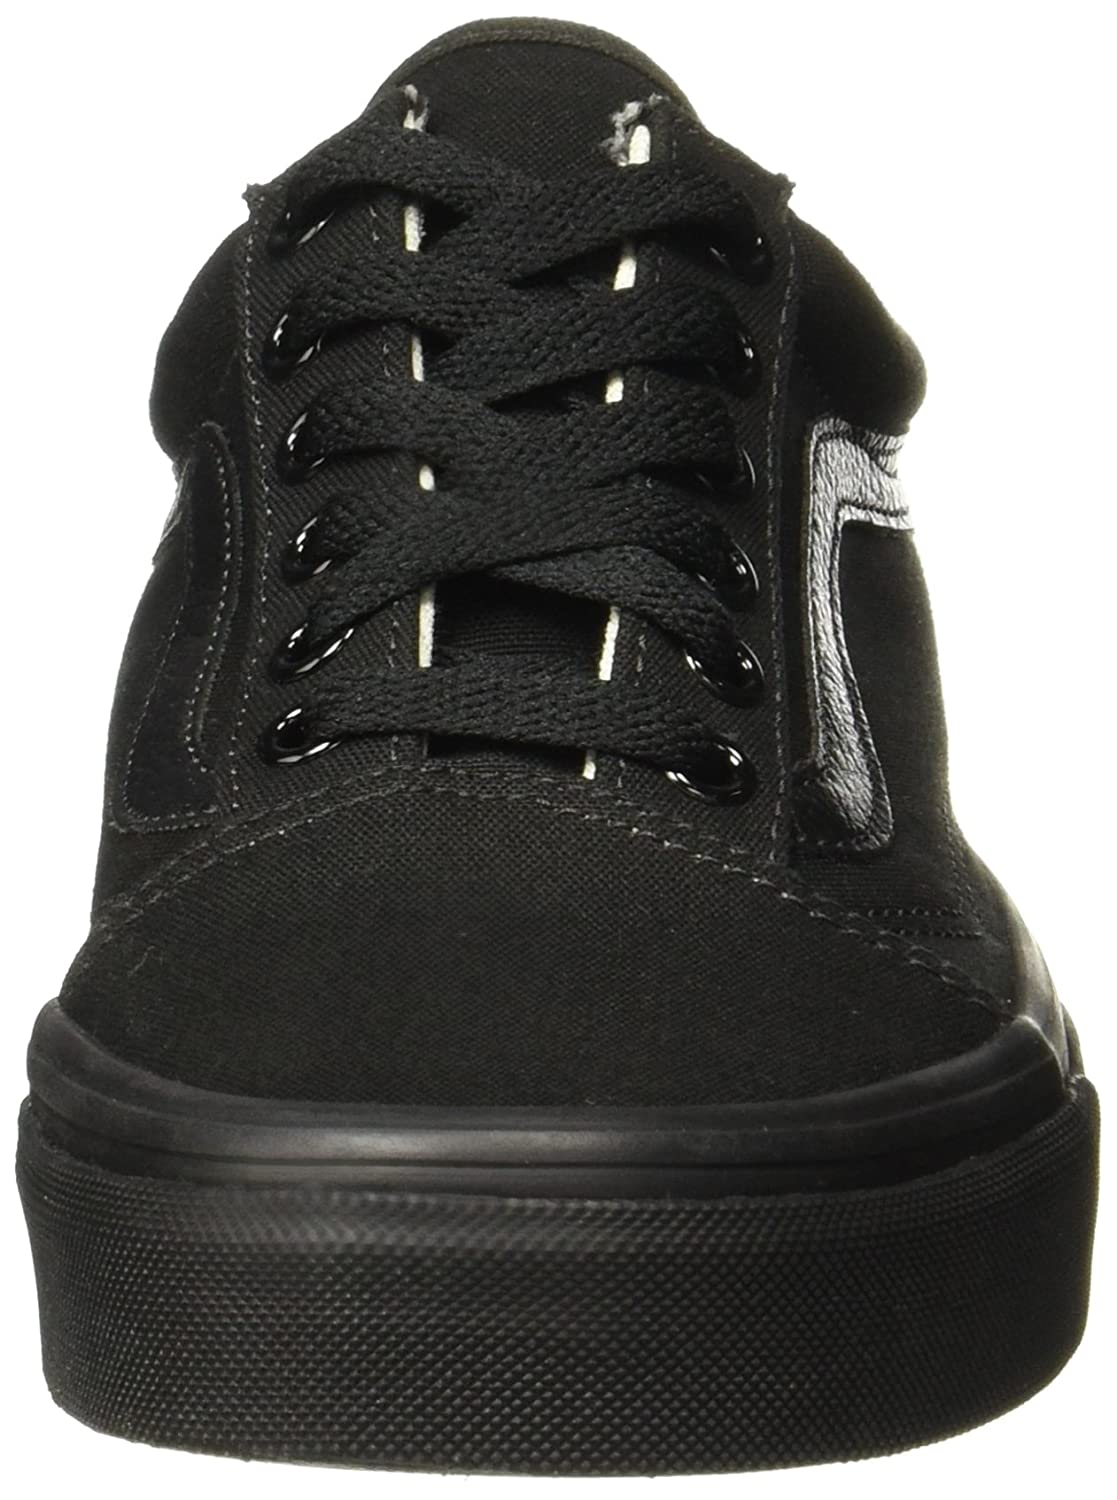 Vans Unisex Old Skool Classic Skate Shoes B01M128MA5 7.5 M US Women / 6 M US Men|Black/Black